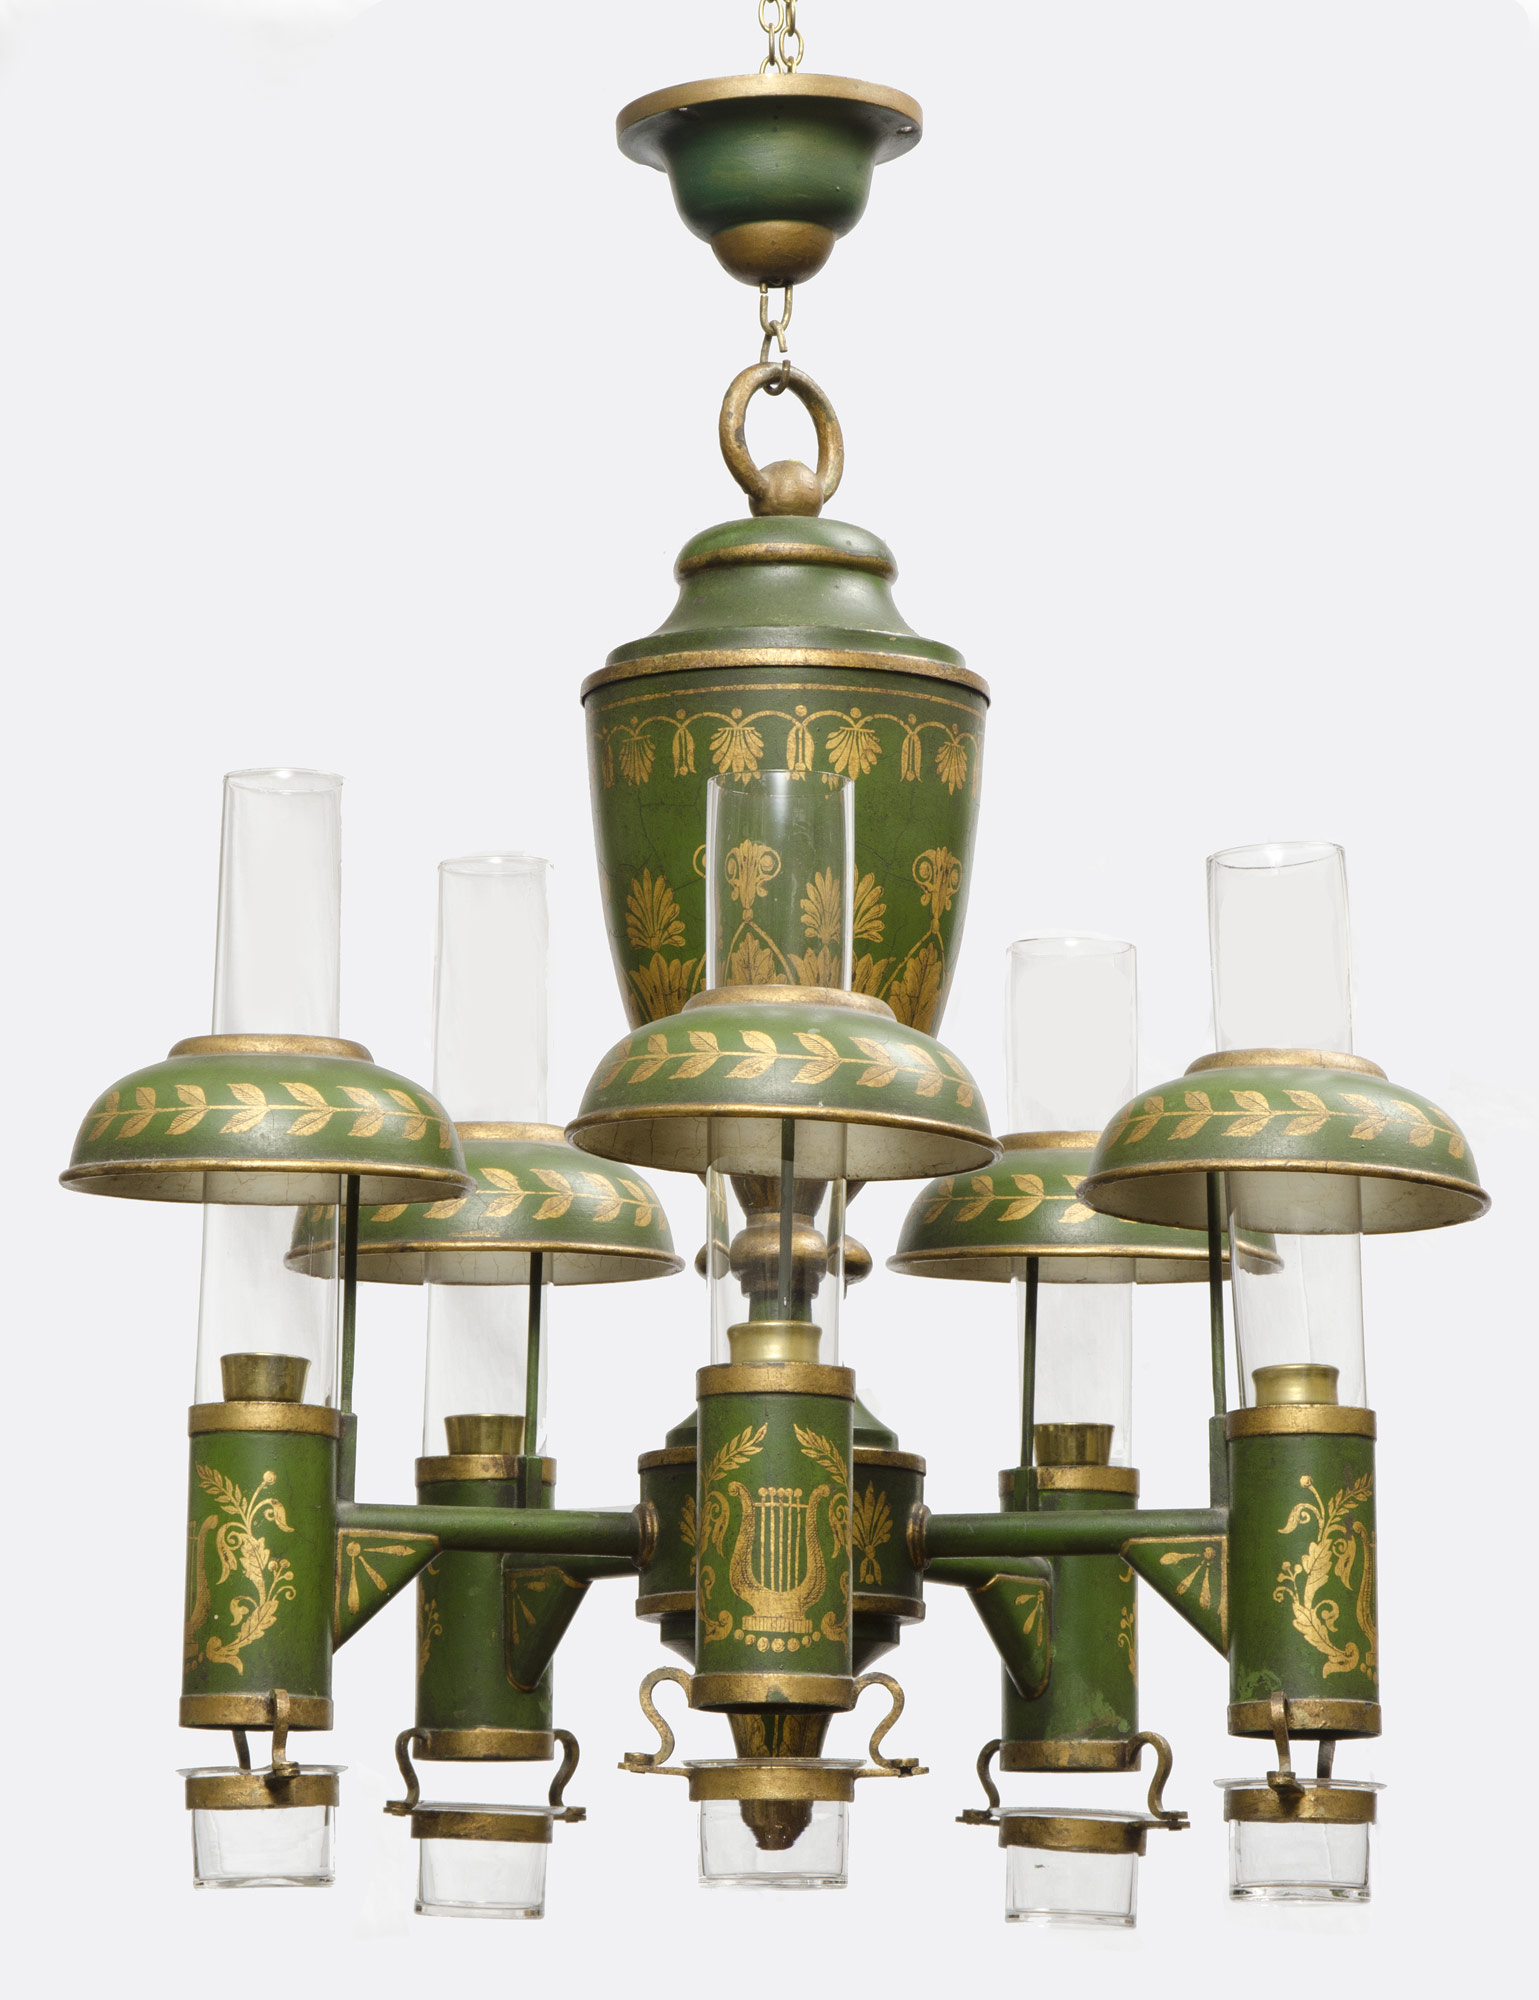 Antique Tole Chandelier Source · Antique Tole Chandelier Antique Furniture - Antique Tole Chandelier - Thesecretconsul.com